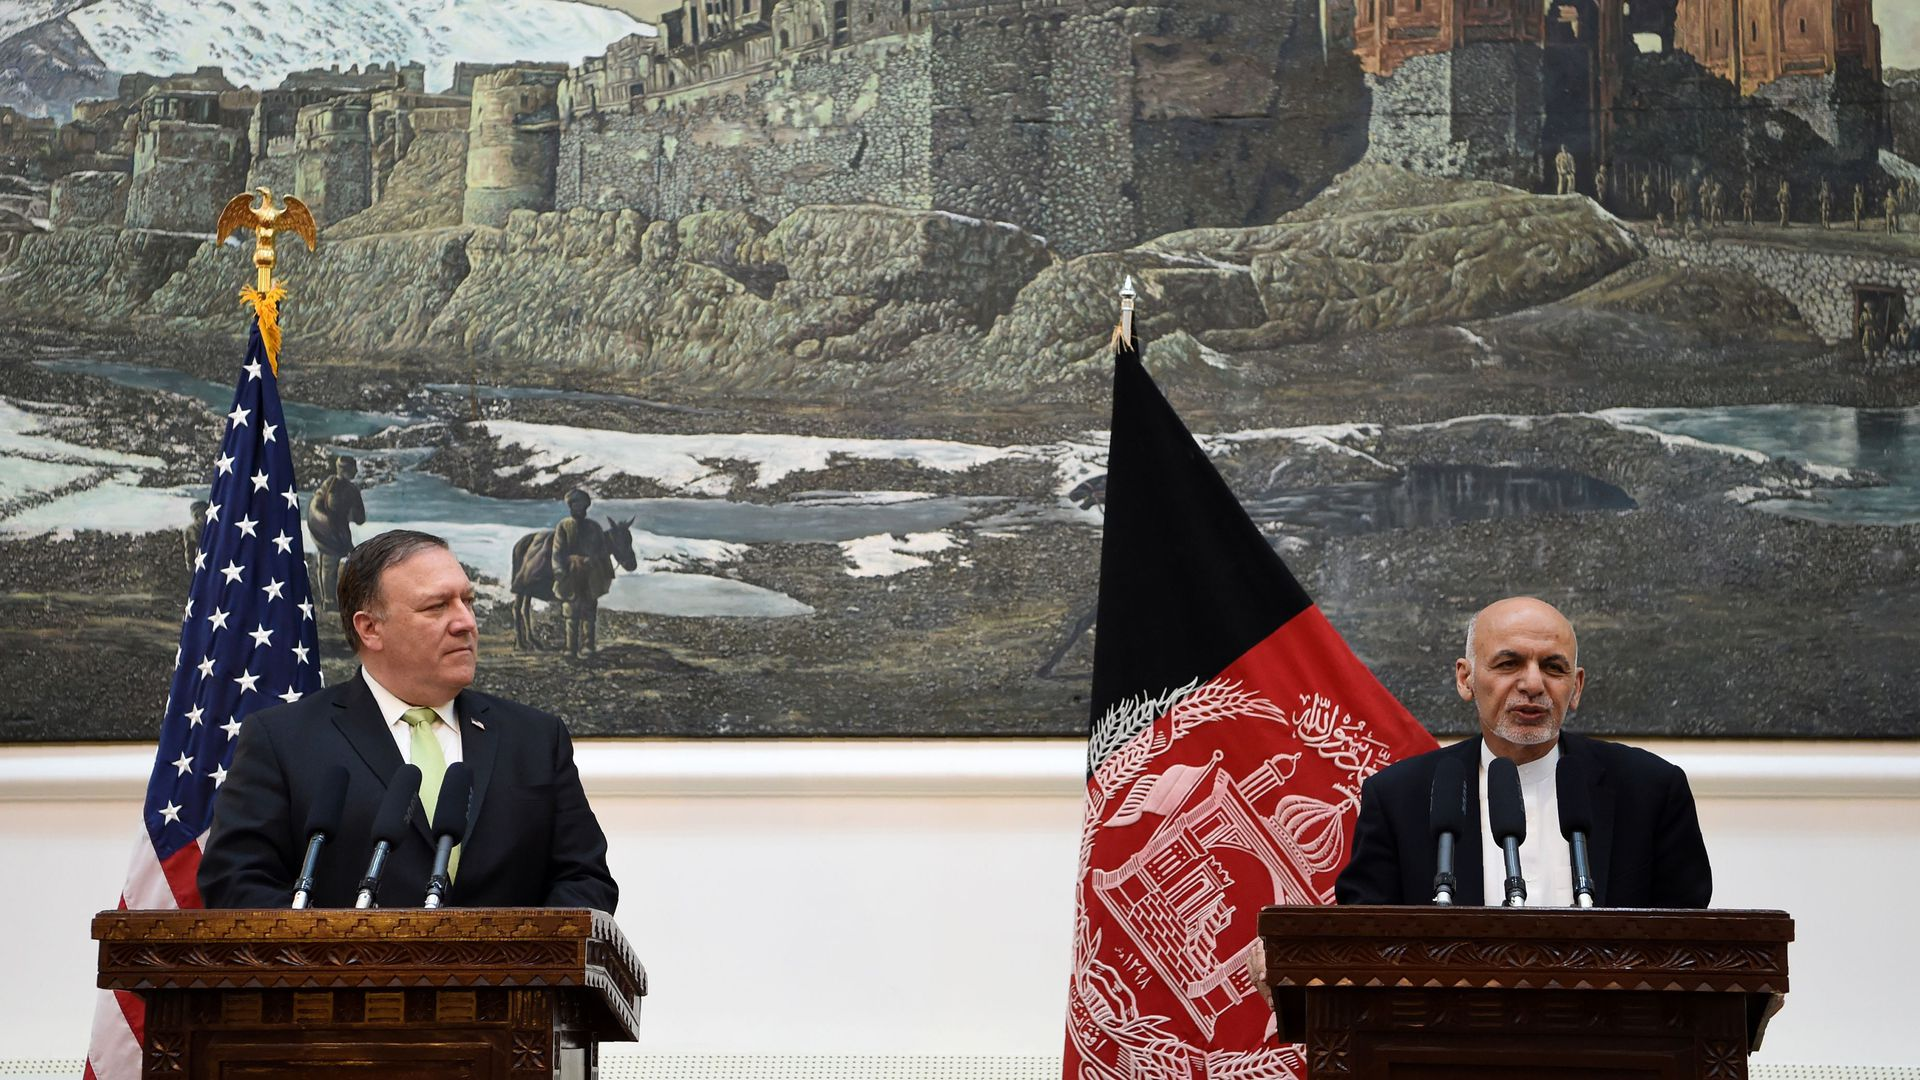 Afghan President Ashraf Ghani and U.S. Secretary of State Mike Pompeo. Photo: Wakil Kohsar /AFP/Getty Images